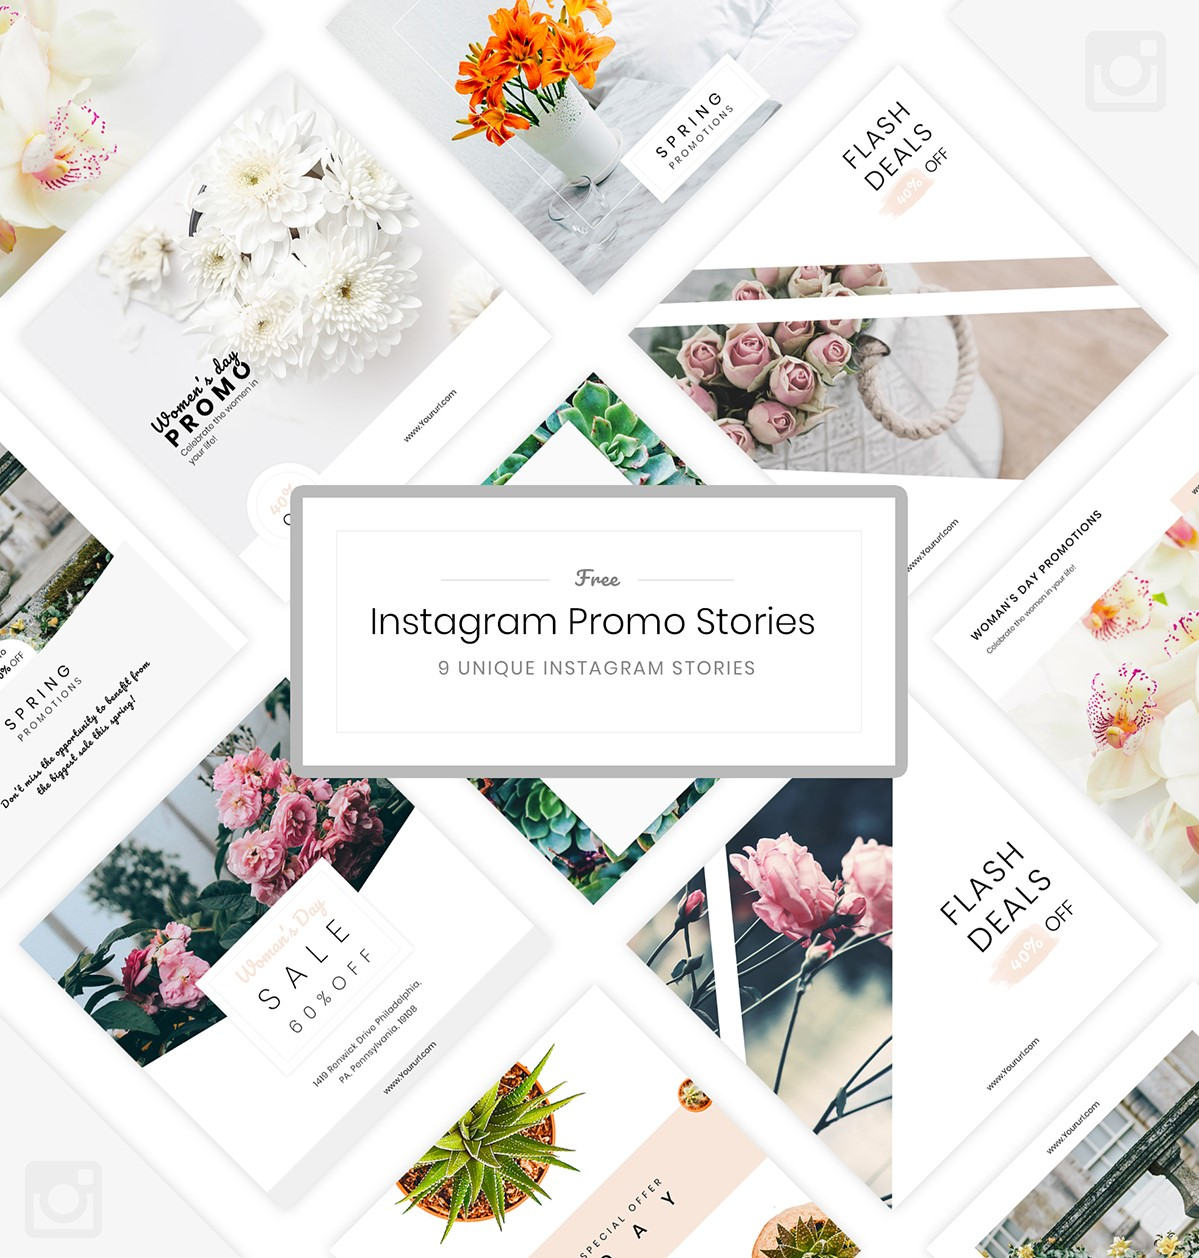 36. Free Instagram Stories Templates PSD